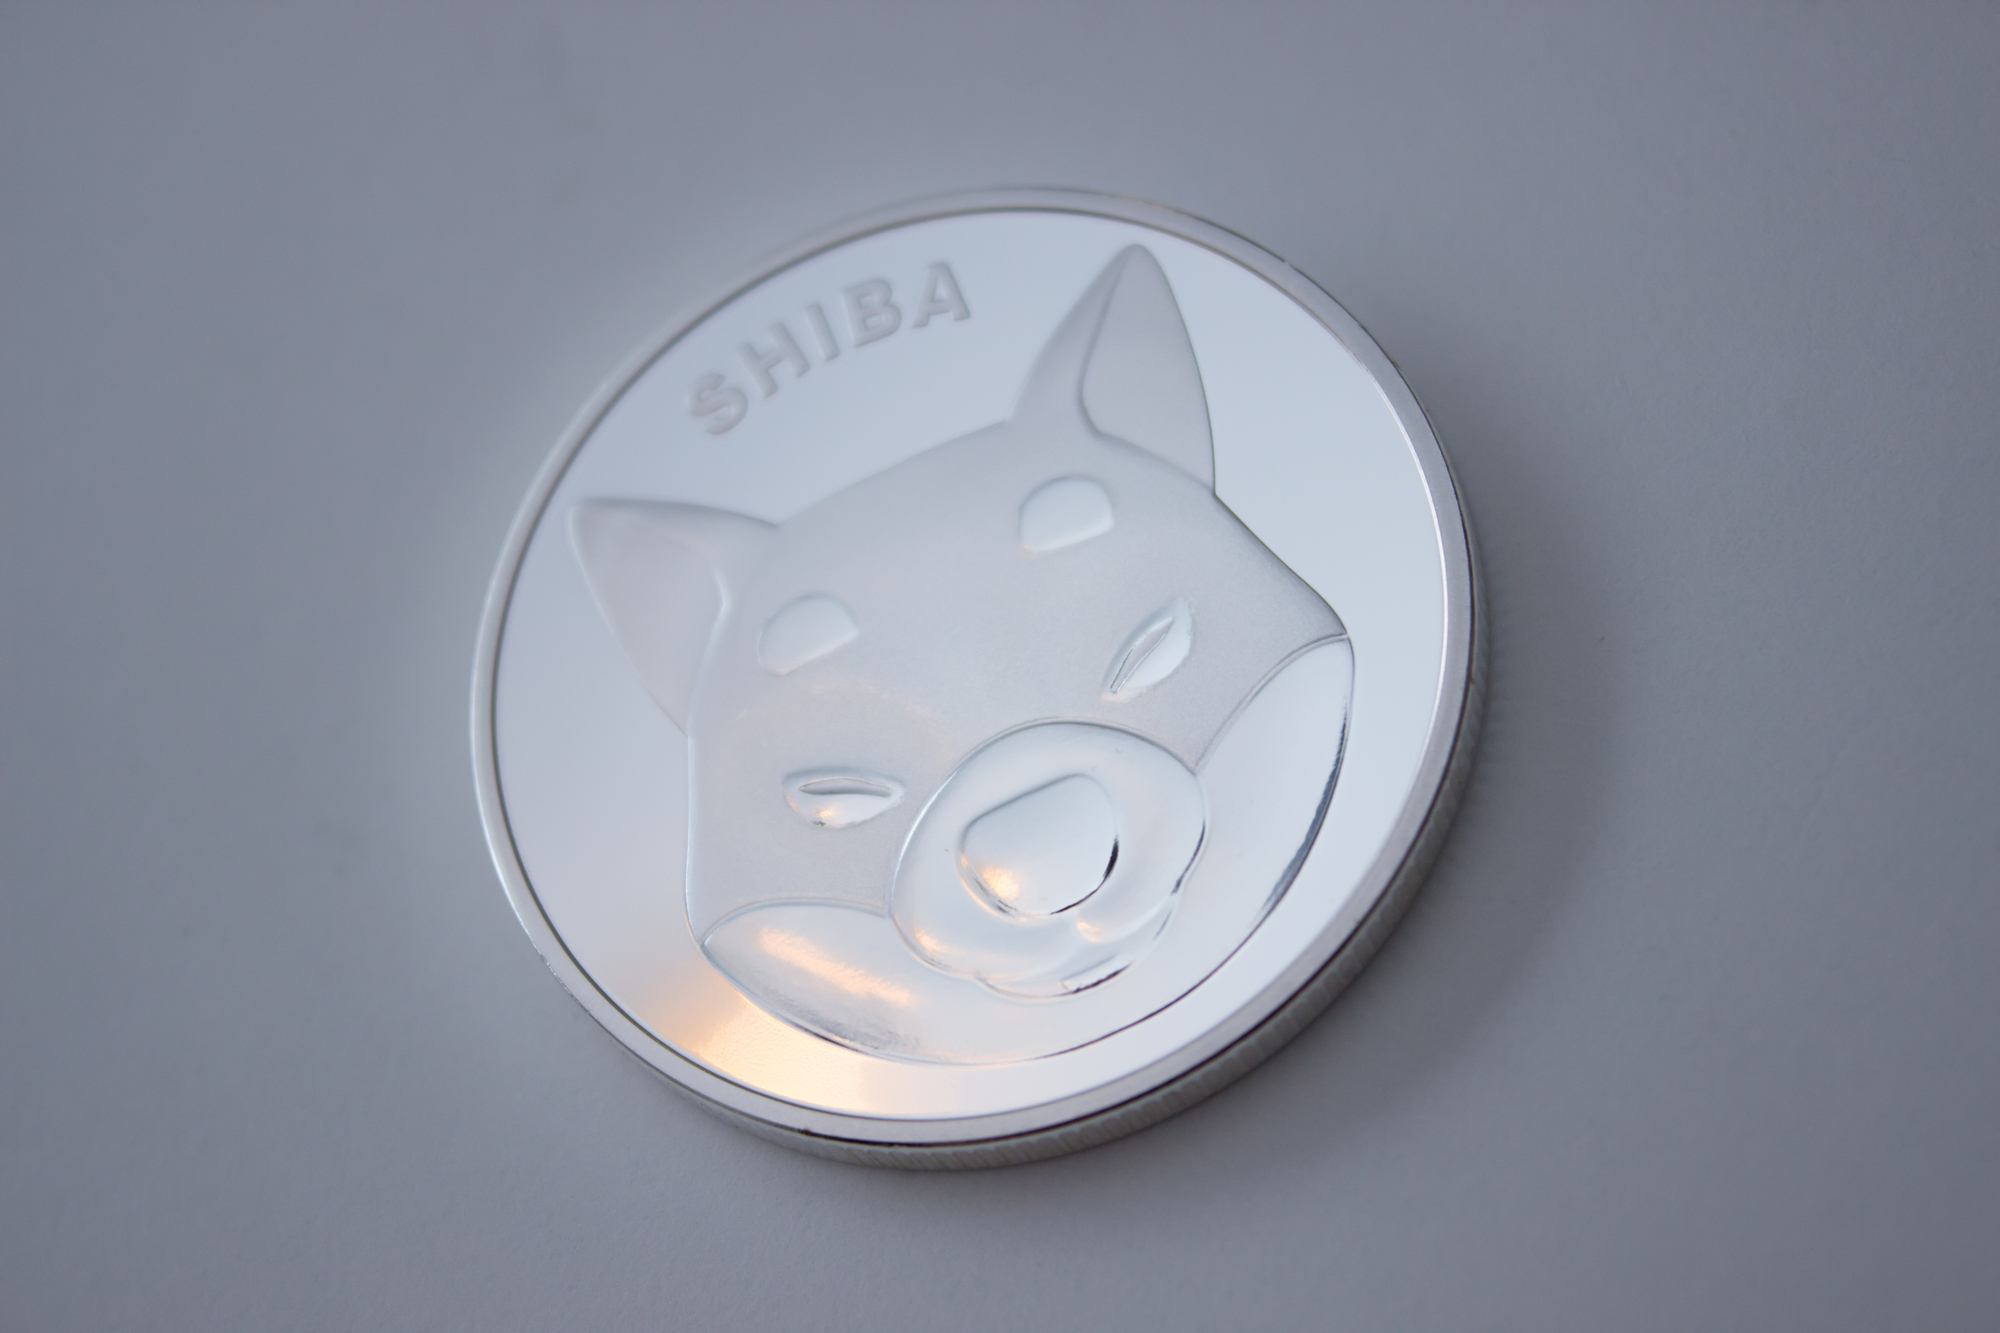 Shiba Inu Moves Higher As Bitcoin Tests Resistance At $46,000